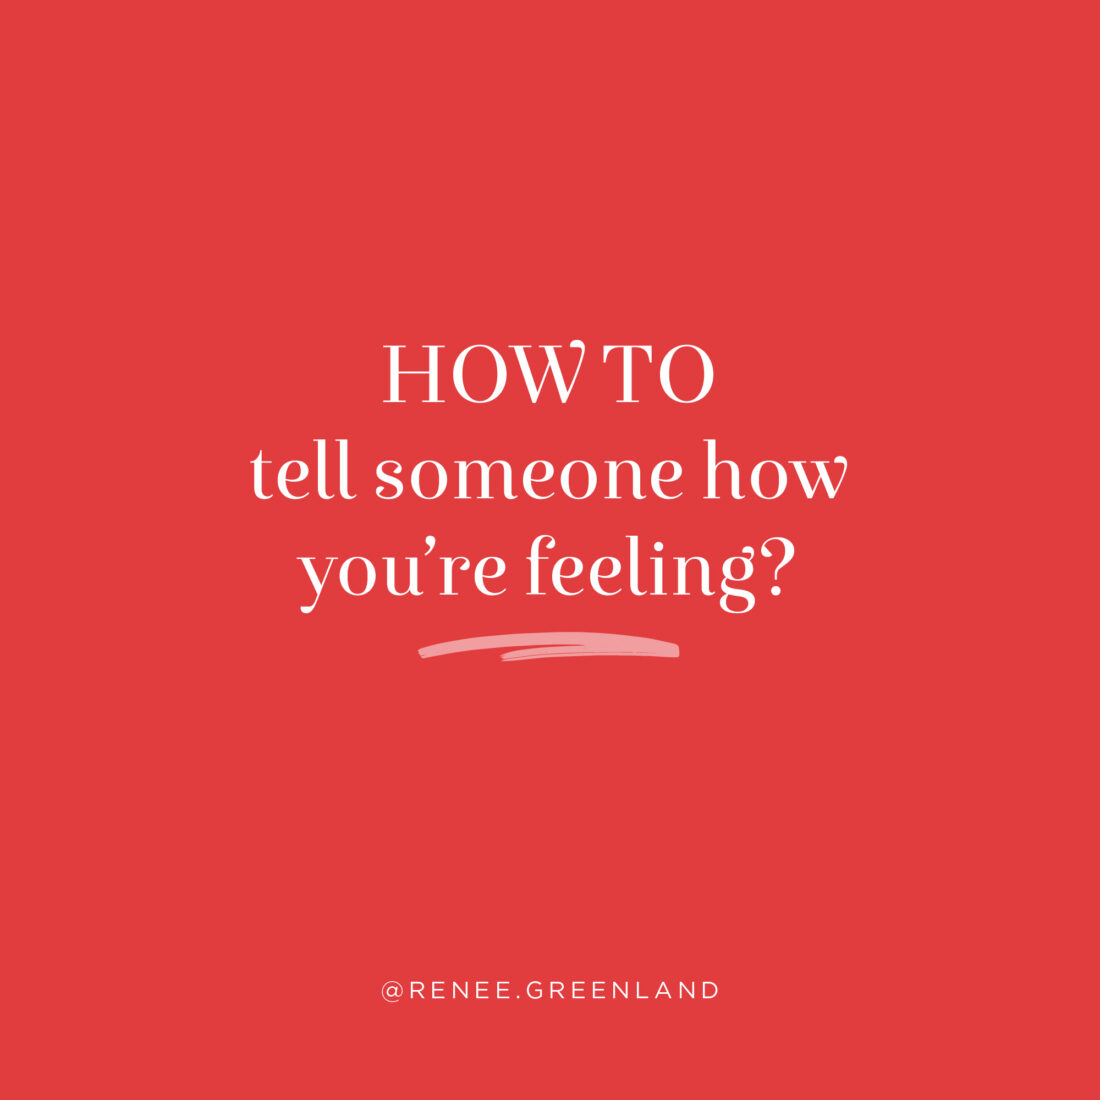 how to tell someone how you are feeling